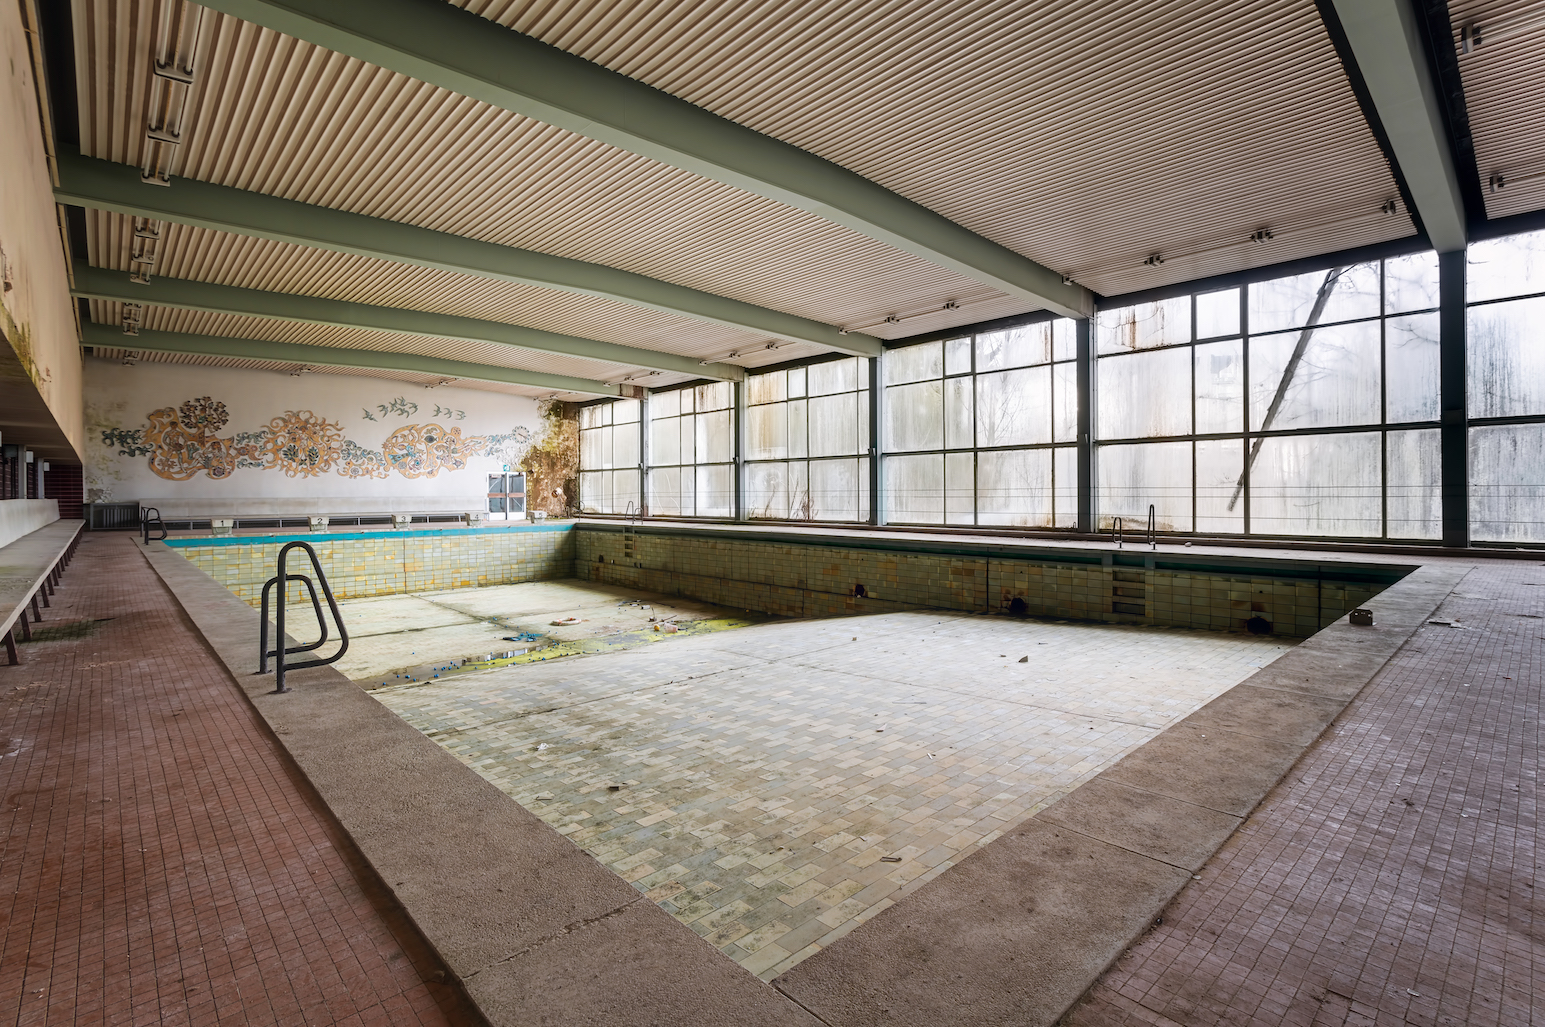 Swimming pool urban photography by roman robroek for Disused swimming pools